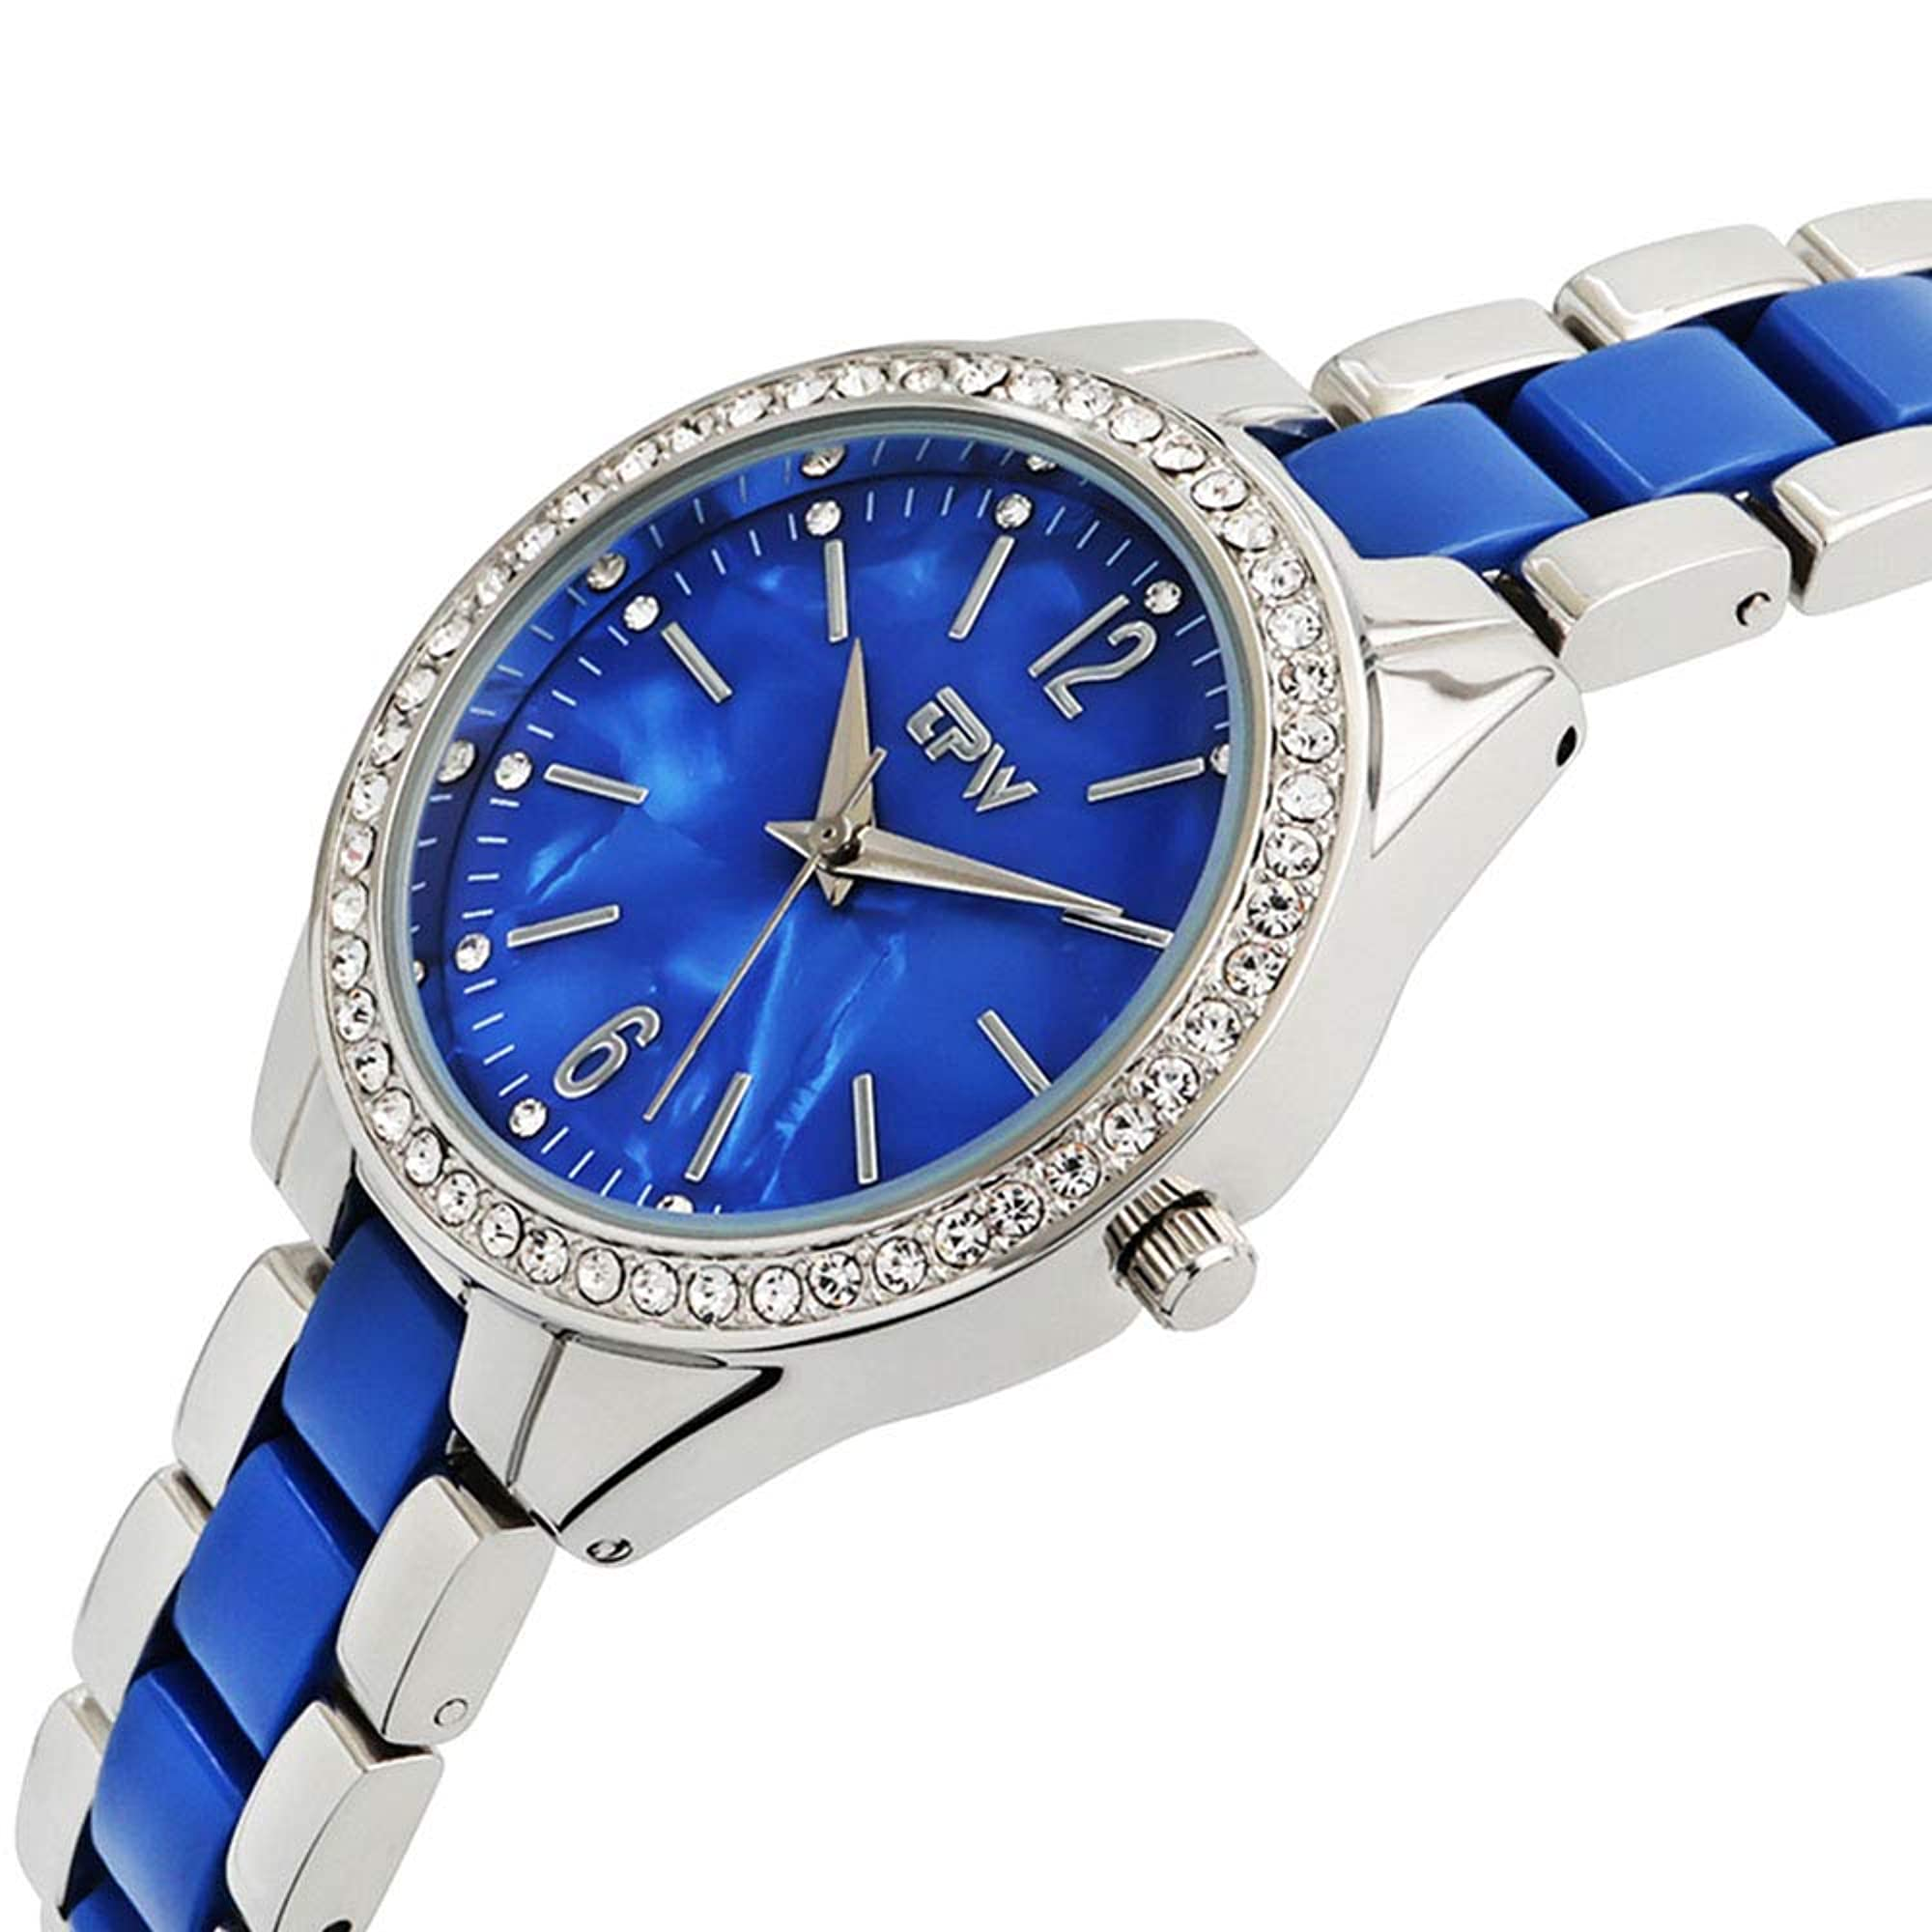 Stainless Steel Quartz Waterproof Wrist Watch